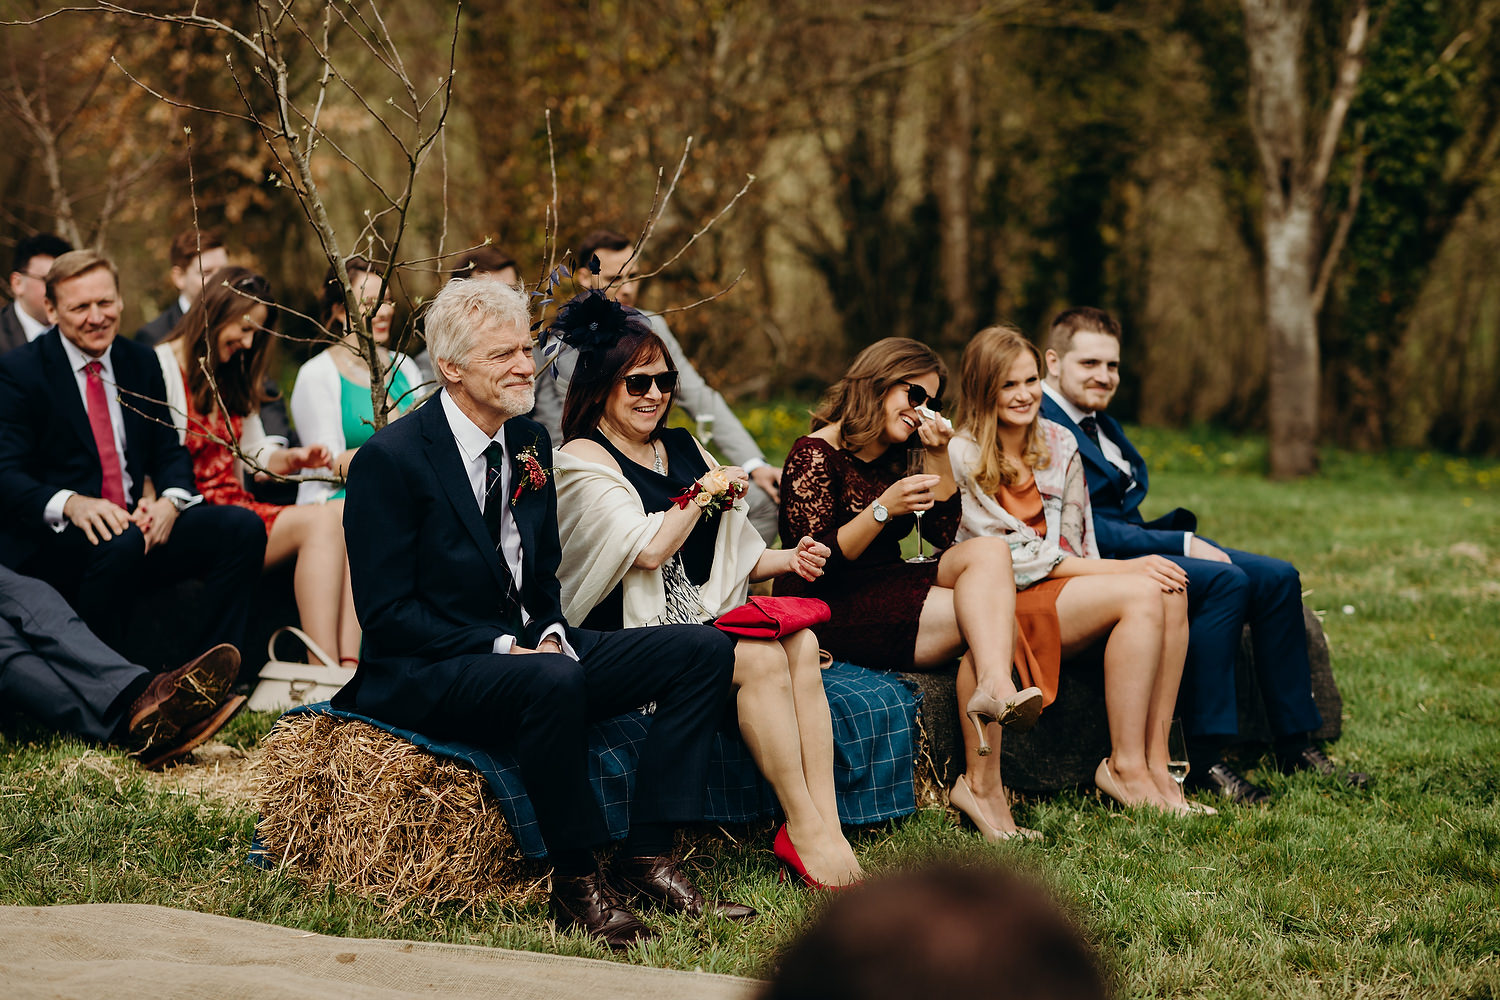 guests sit during outdoor wedding